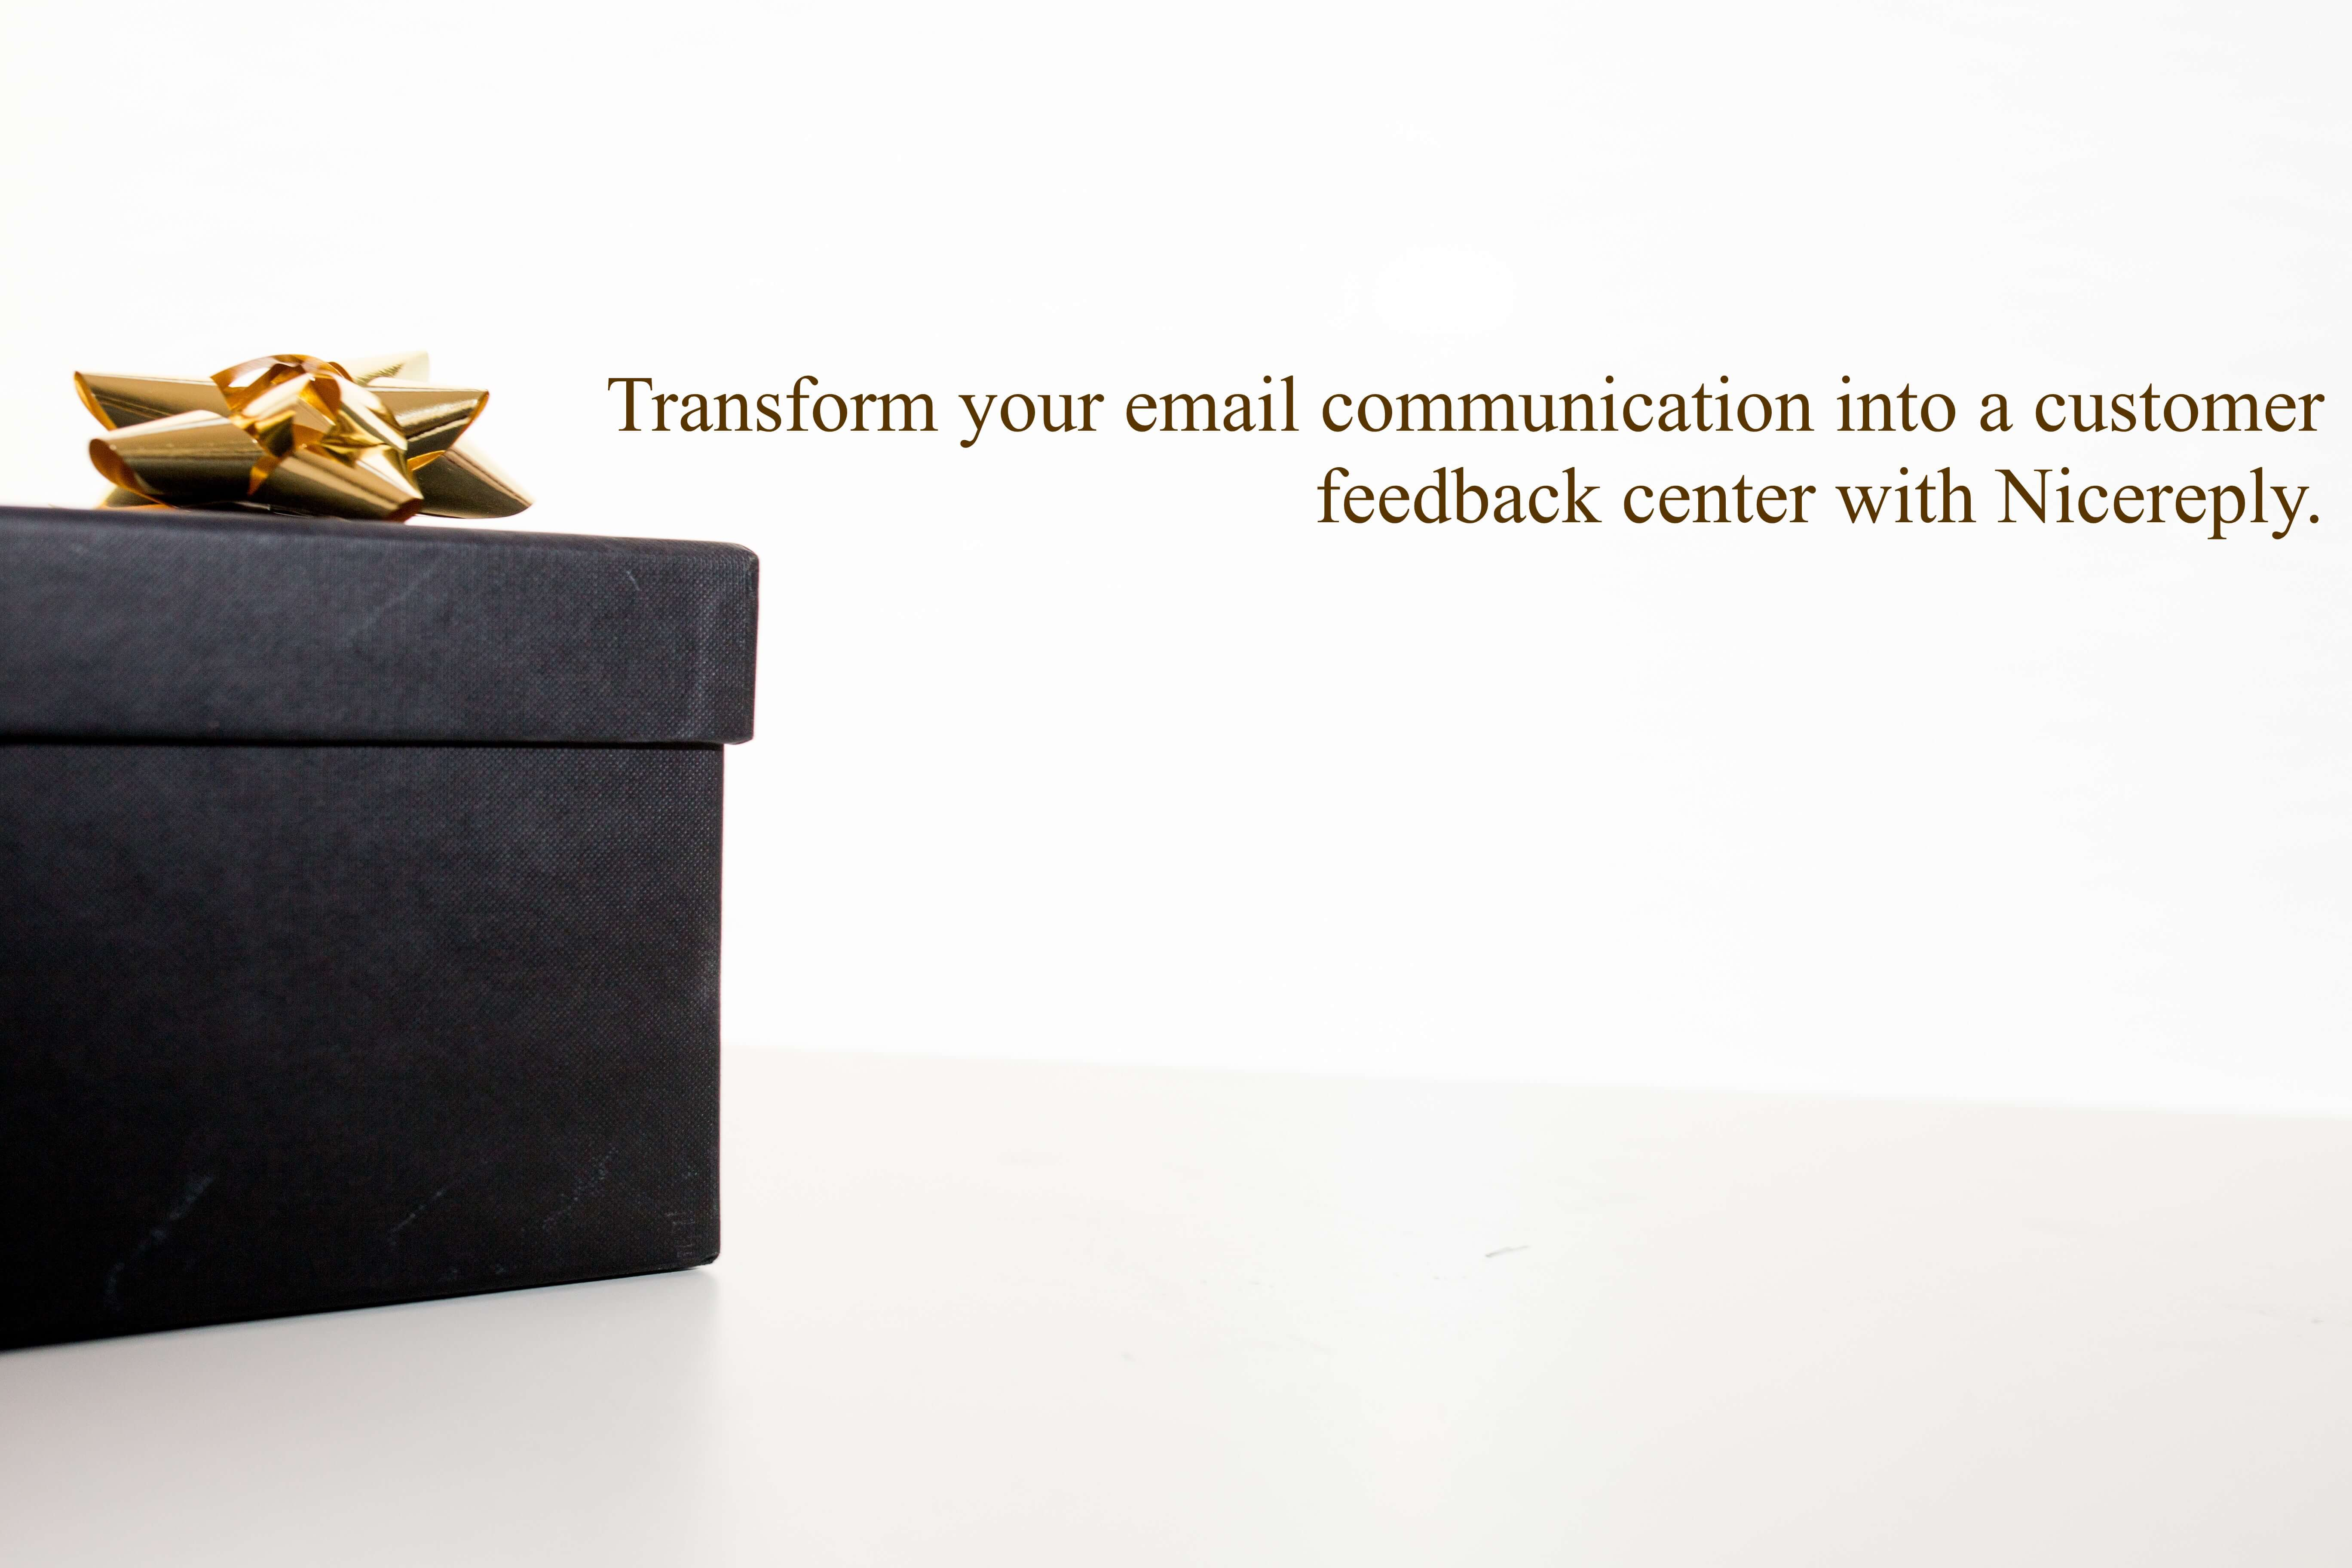 Transform your email communication into a customer feedback center with Nicereply.